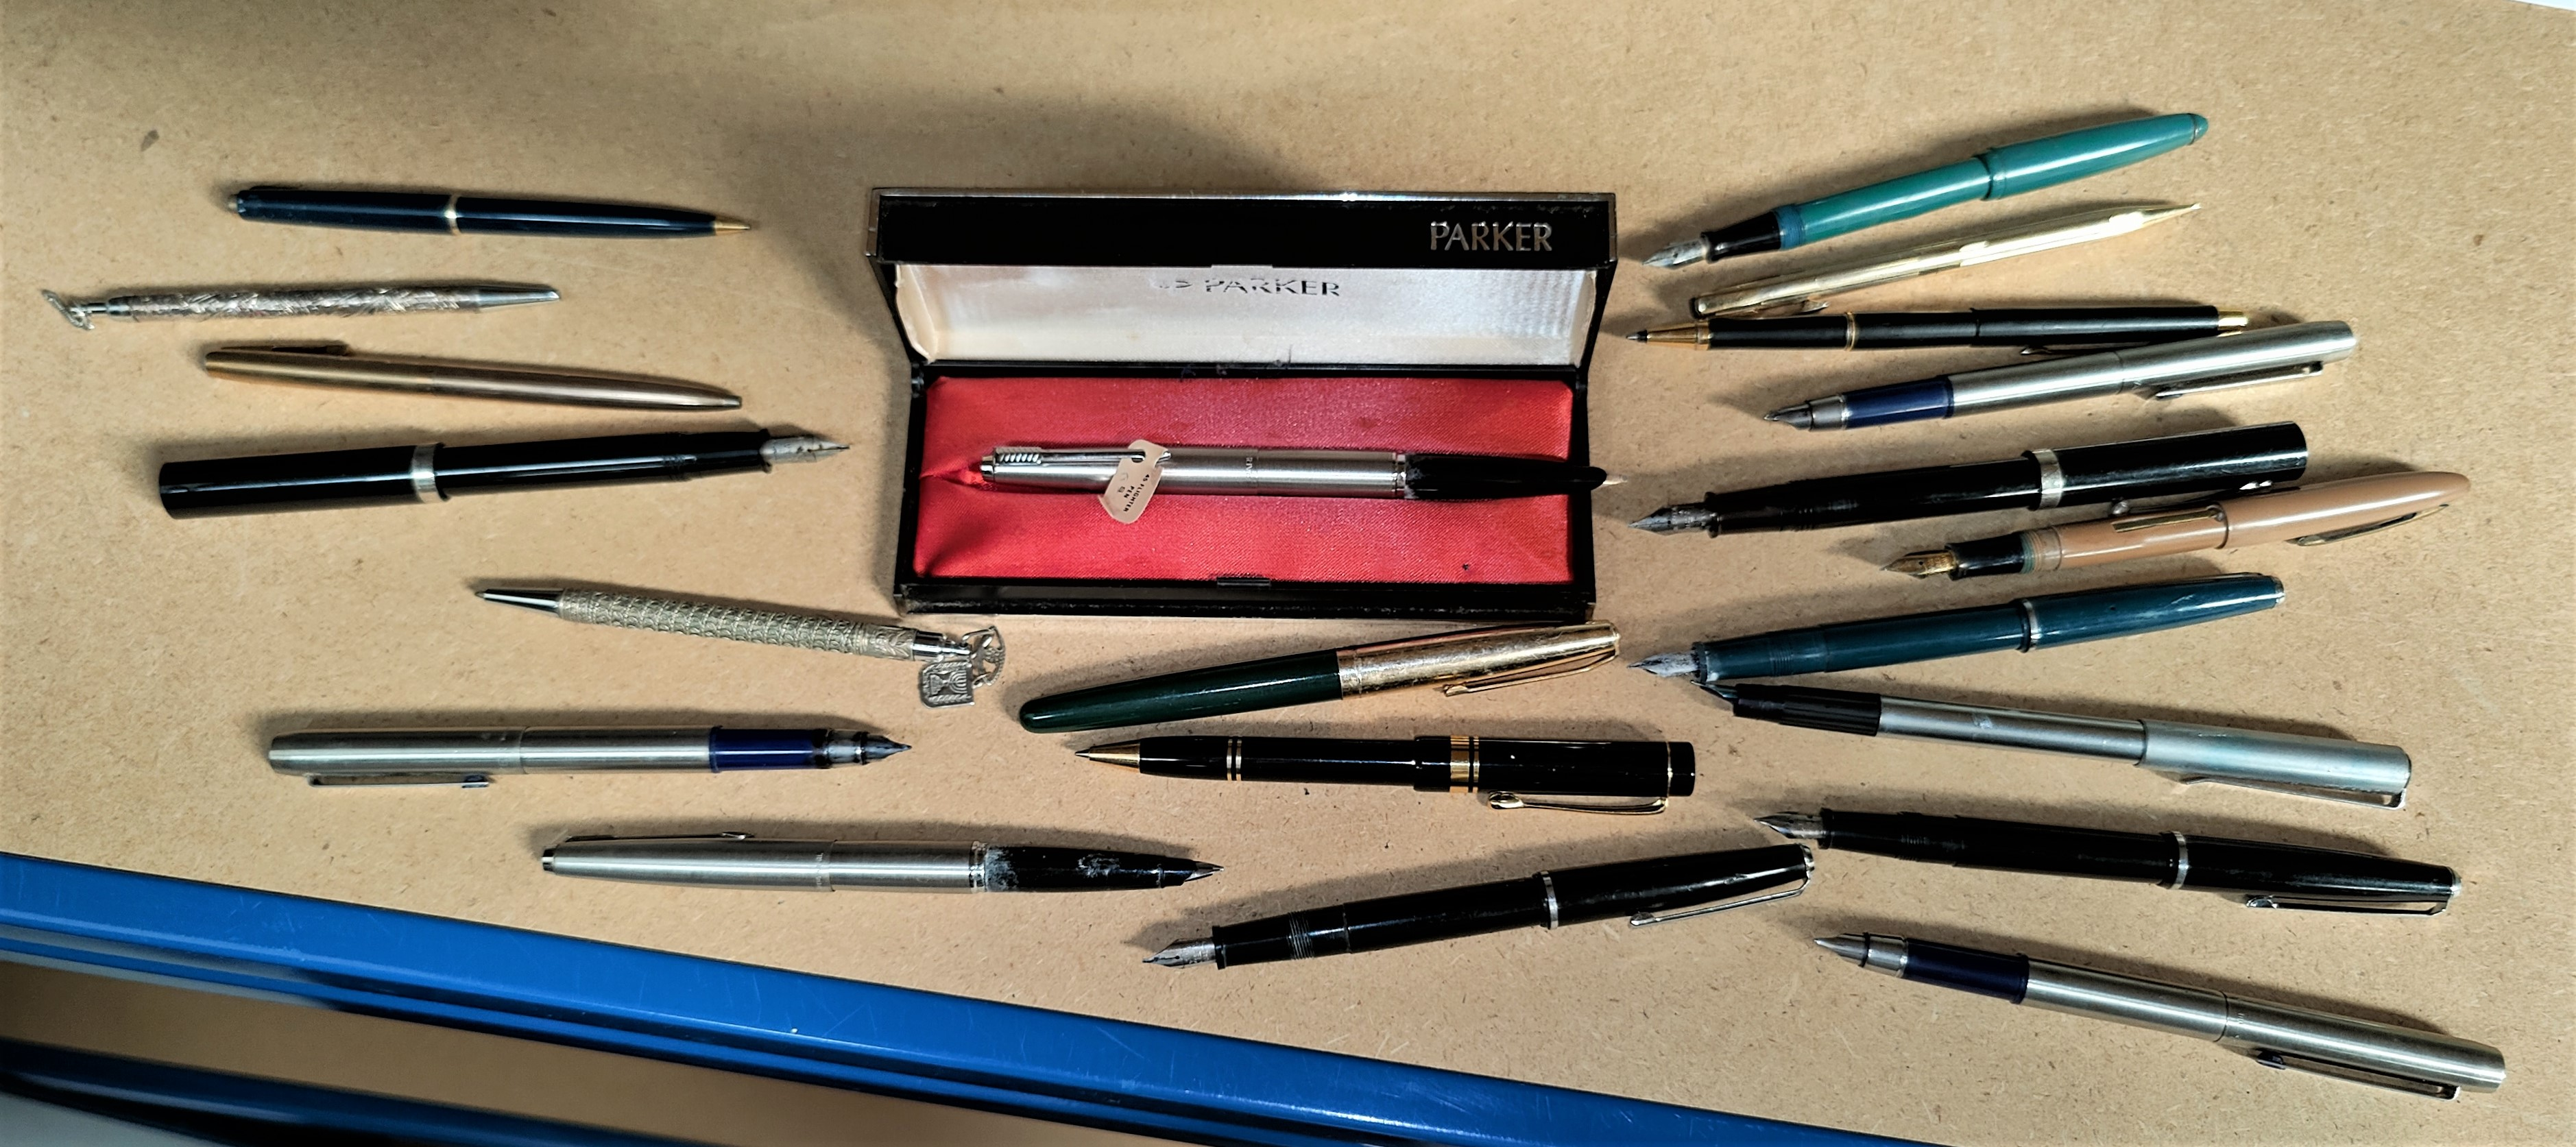 An originally boxed stainless steel Parker fountain pen & other fountain pens, ballpoints etc